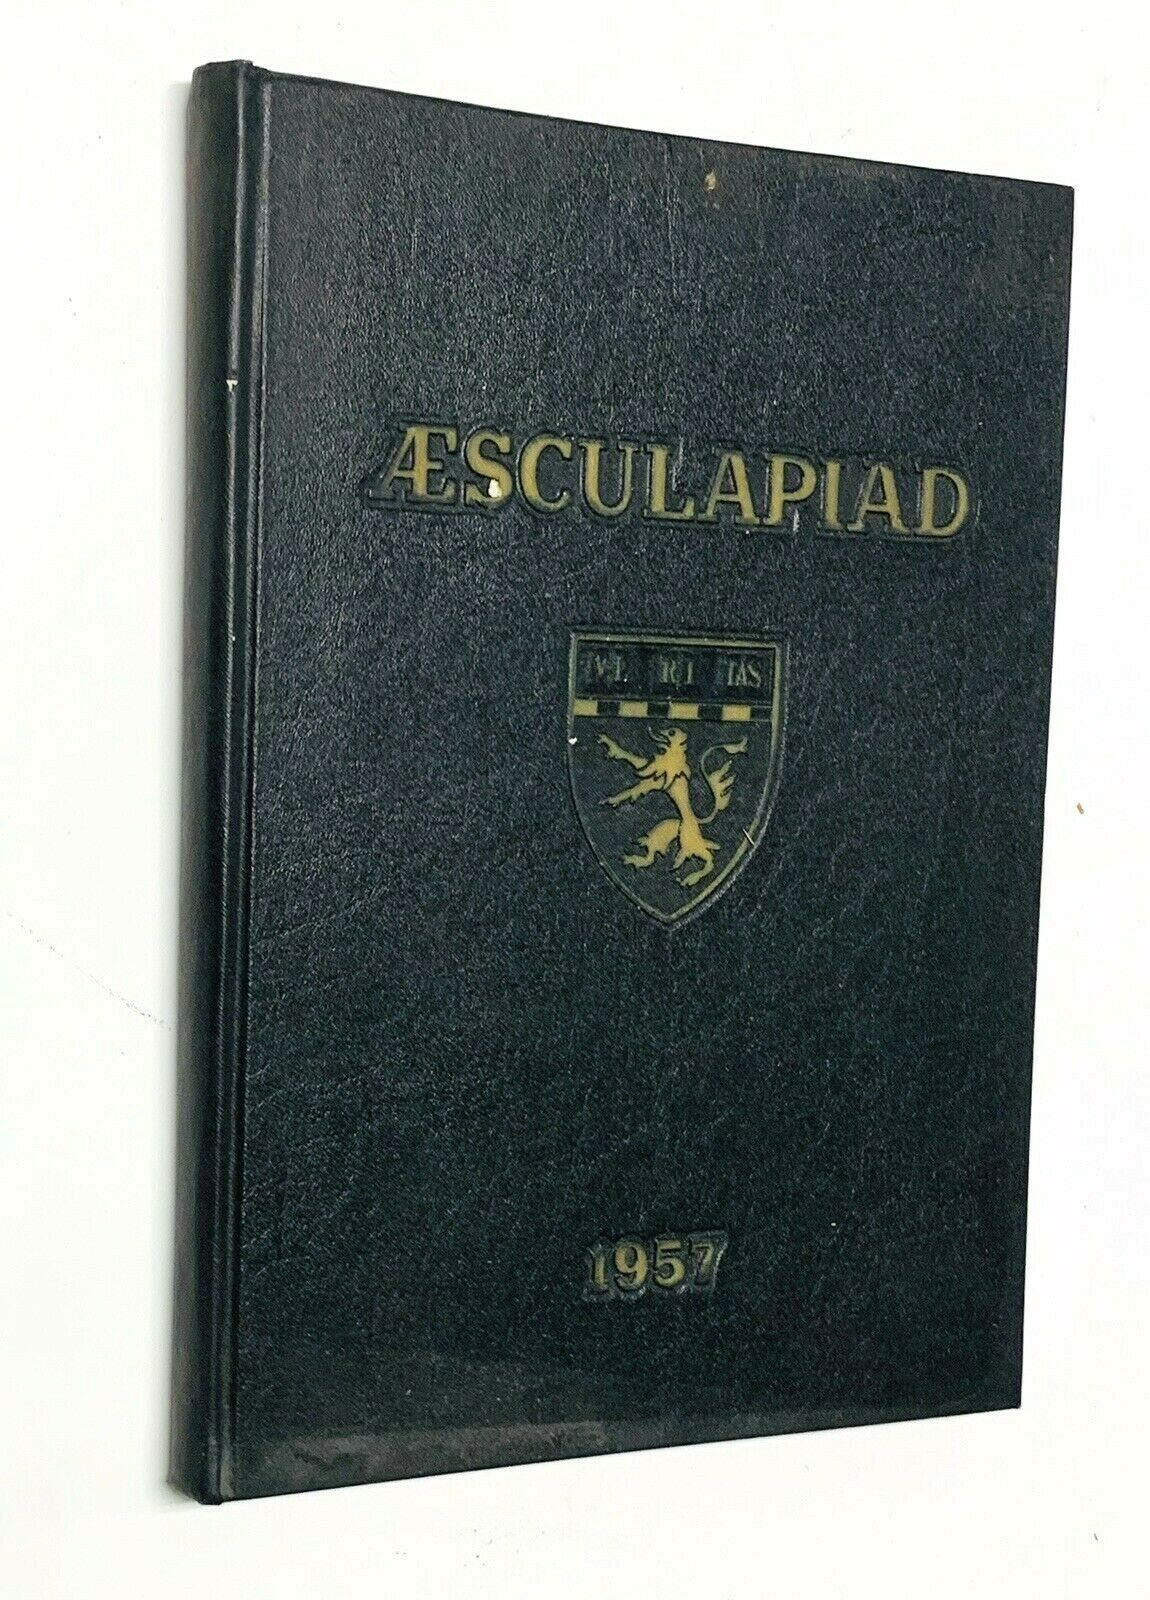 HARVARD Medical School Yearbook (1957) Aesculapiad Dental School 1